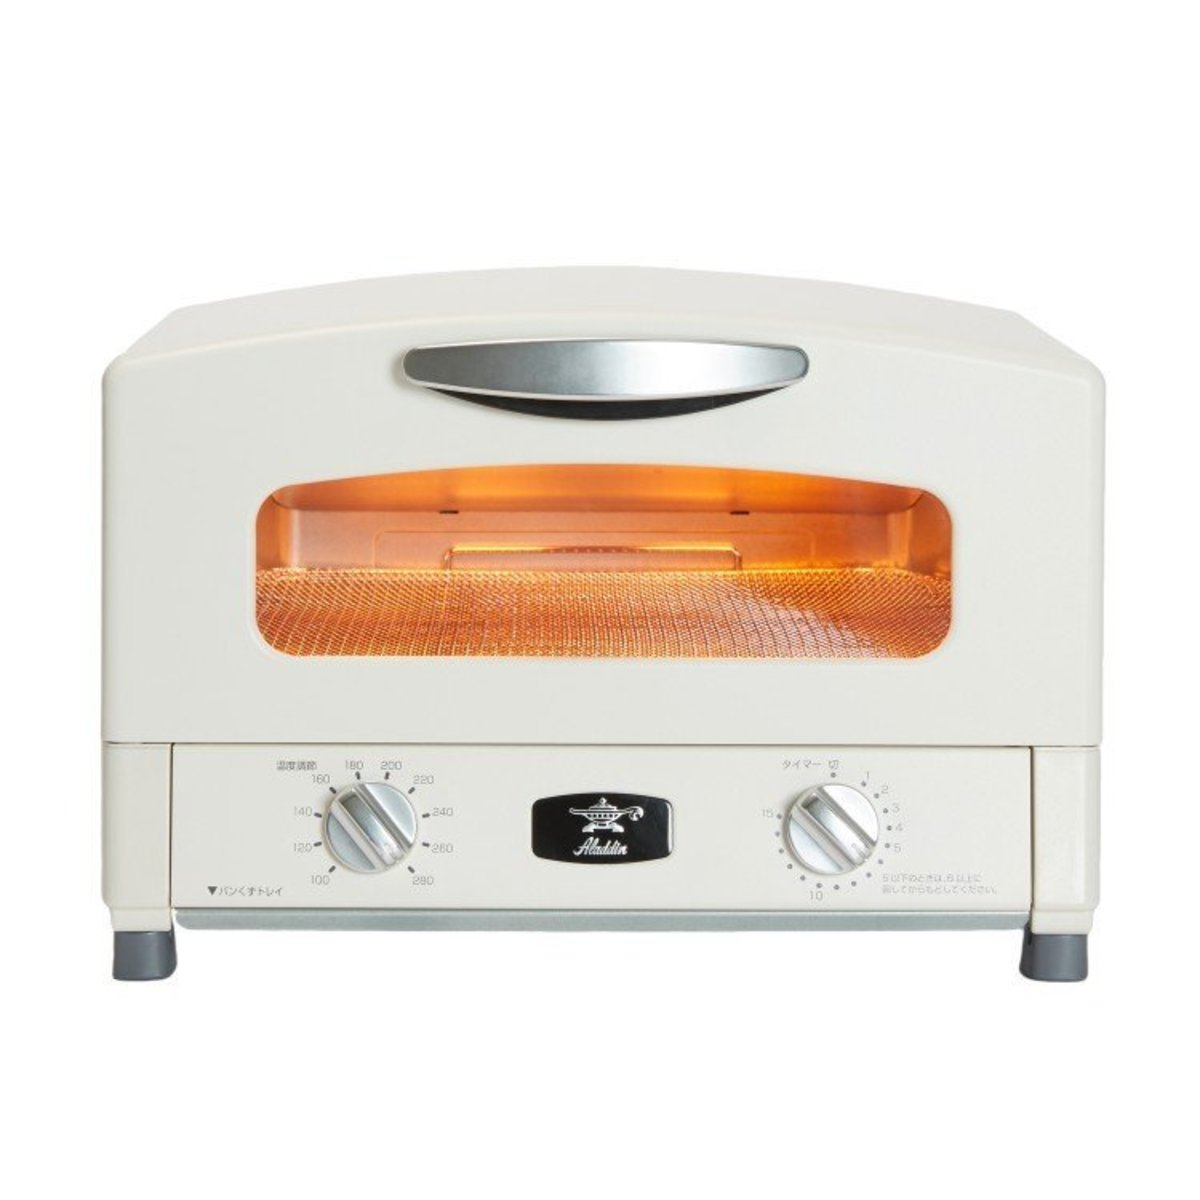 AET-G16SW Graphite Grill & Oven Toaster Ivory White